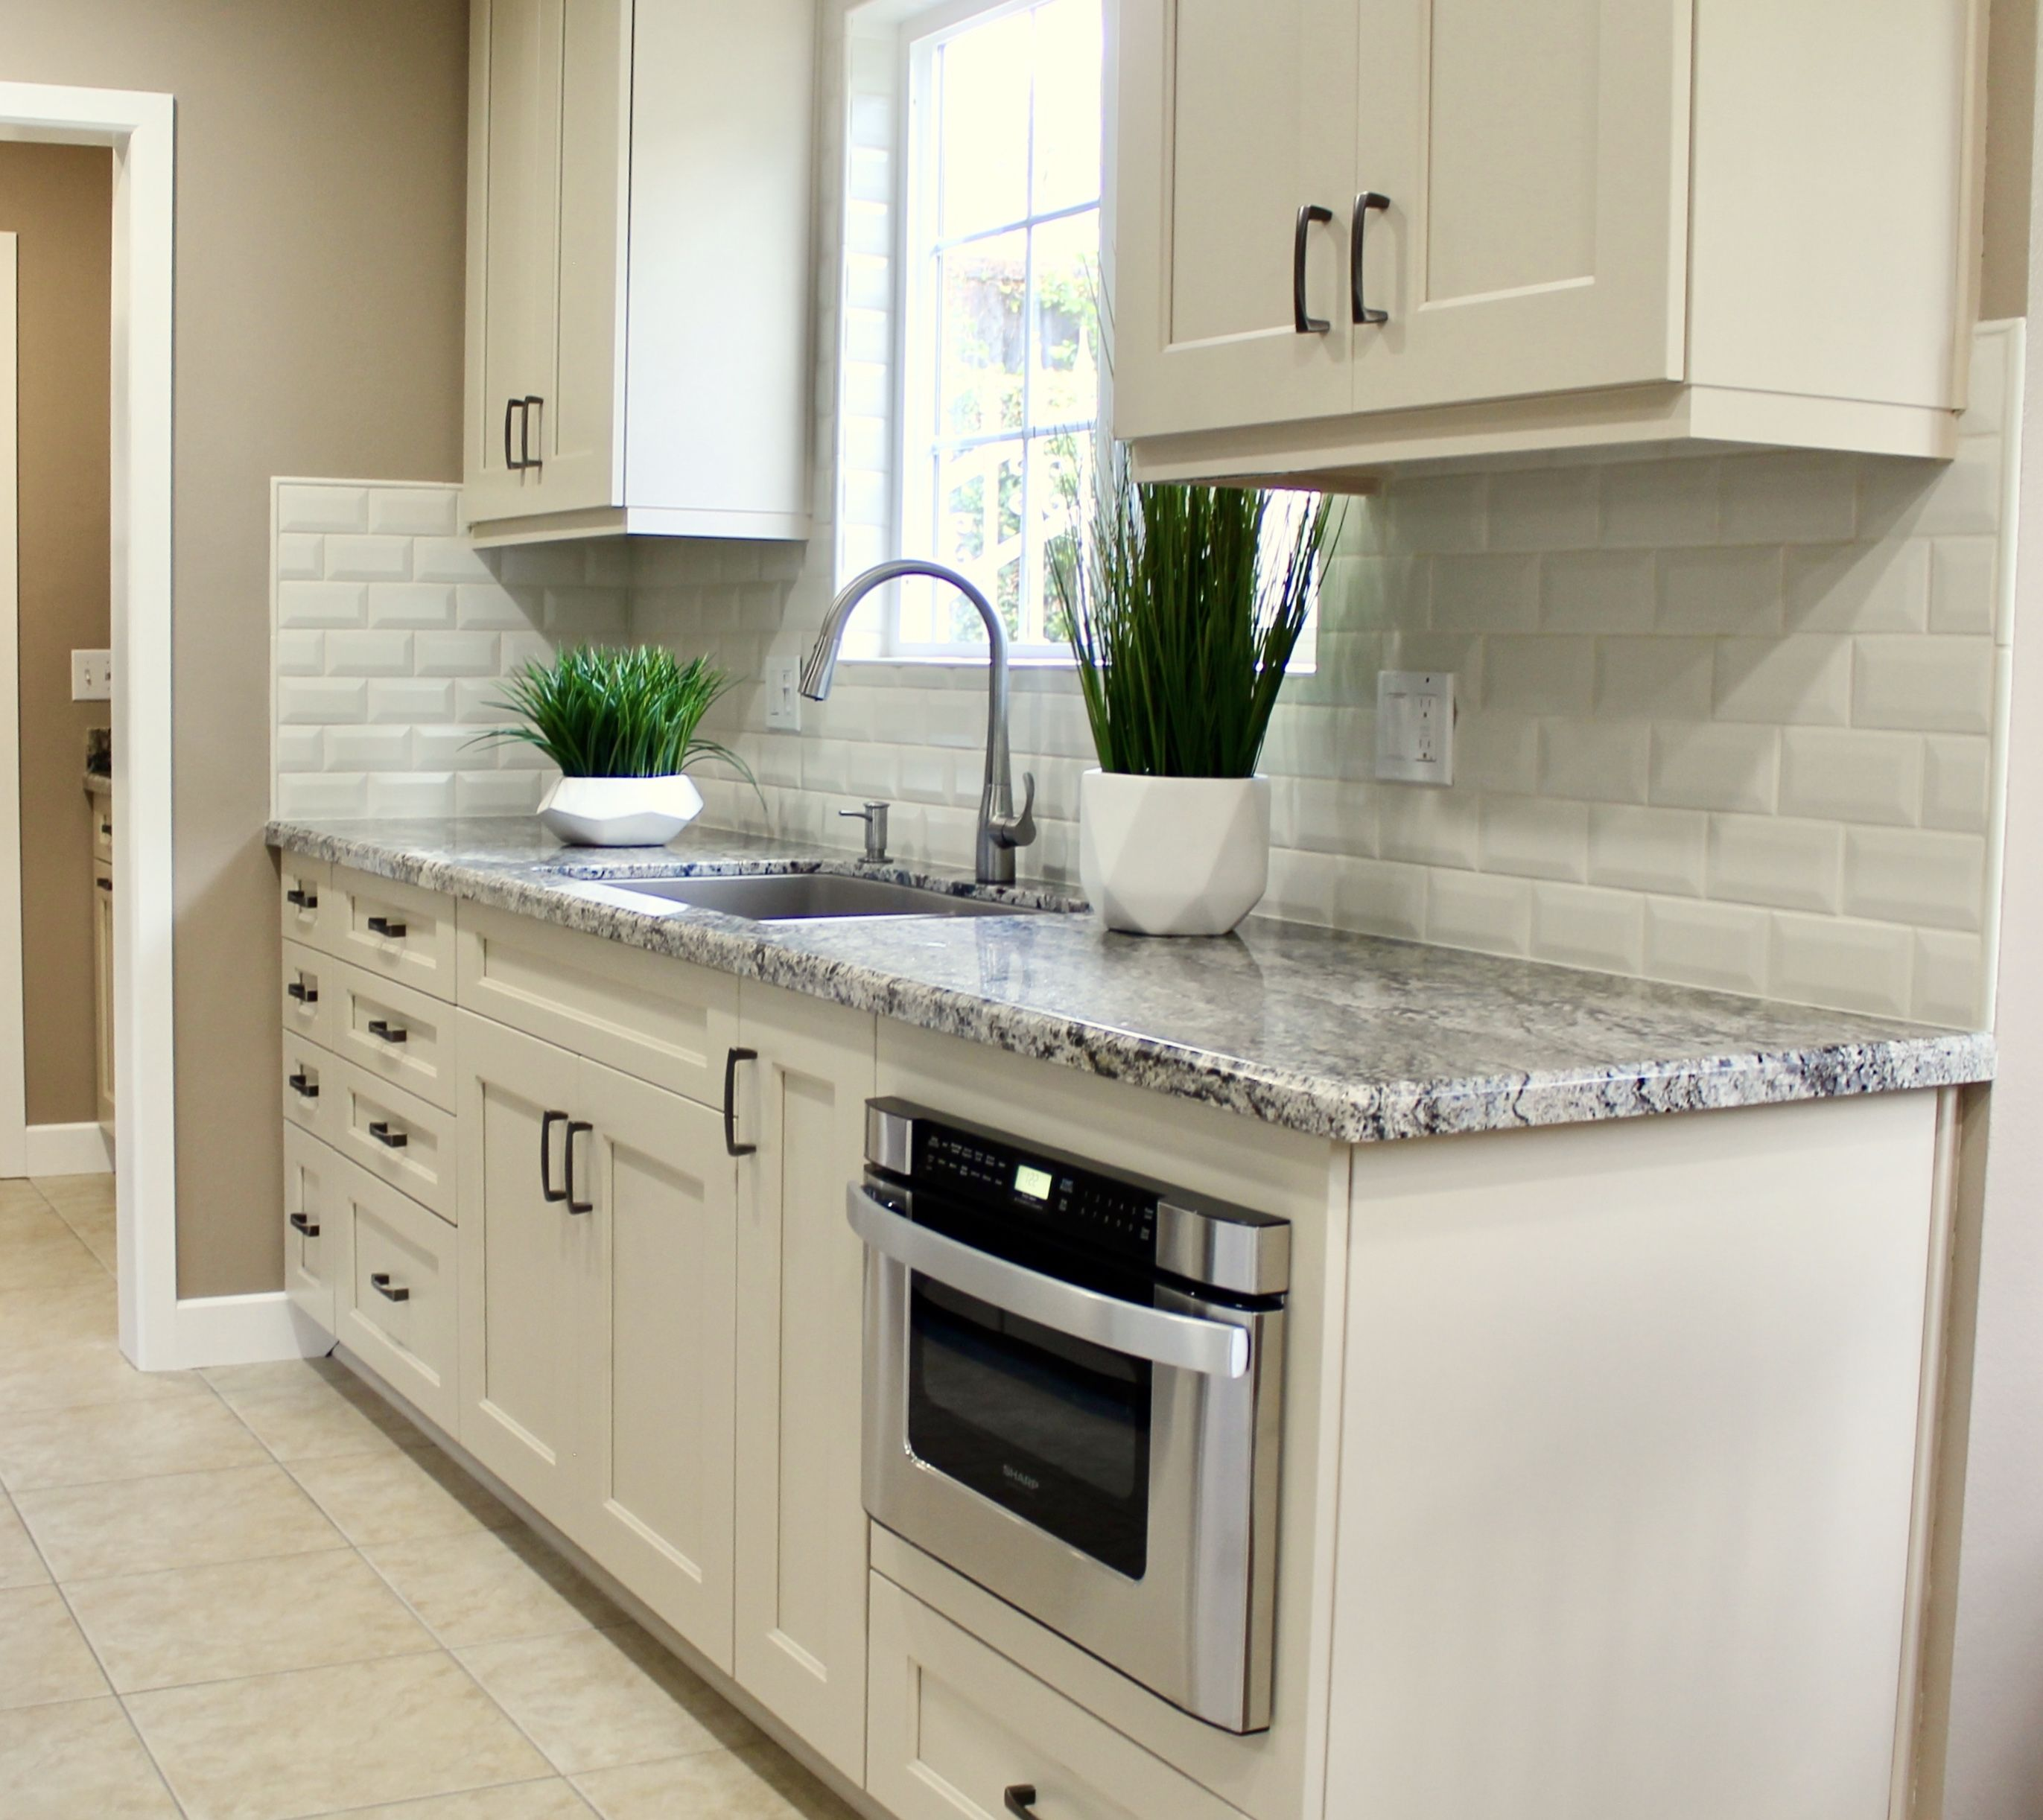 This La Mirada Kitchen Reface Looks Incredible The Updated Door Style And Subway Tile Backsplash Gave The Kitchen A Kitchen Refacing Kitchen Cabinetry Kitchen